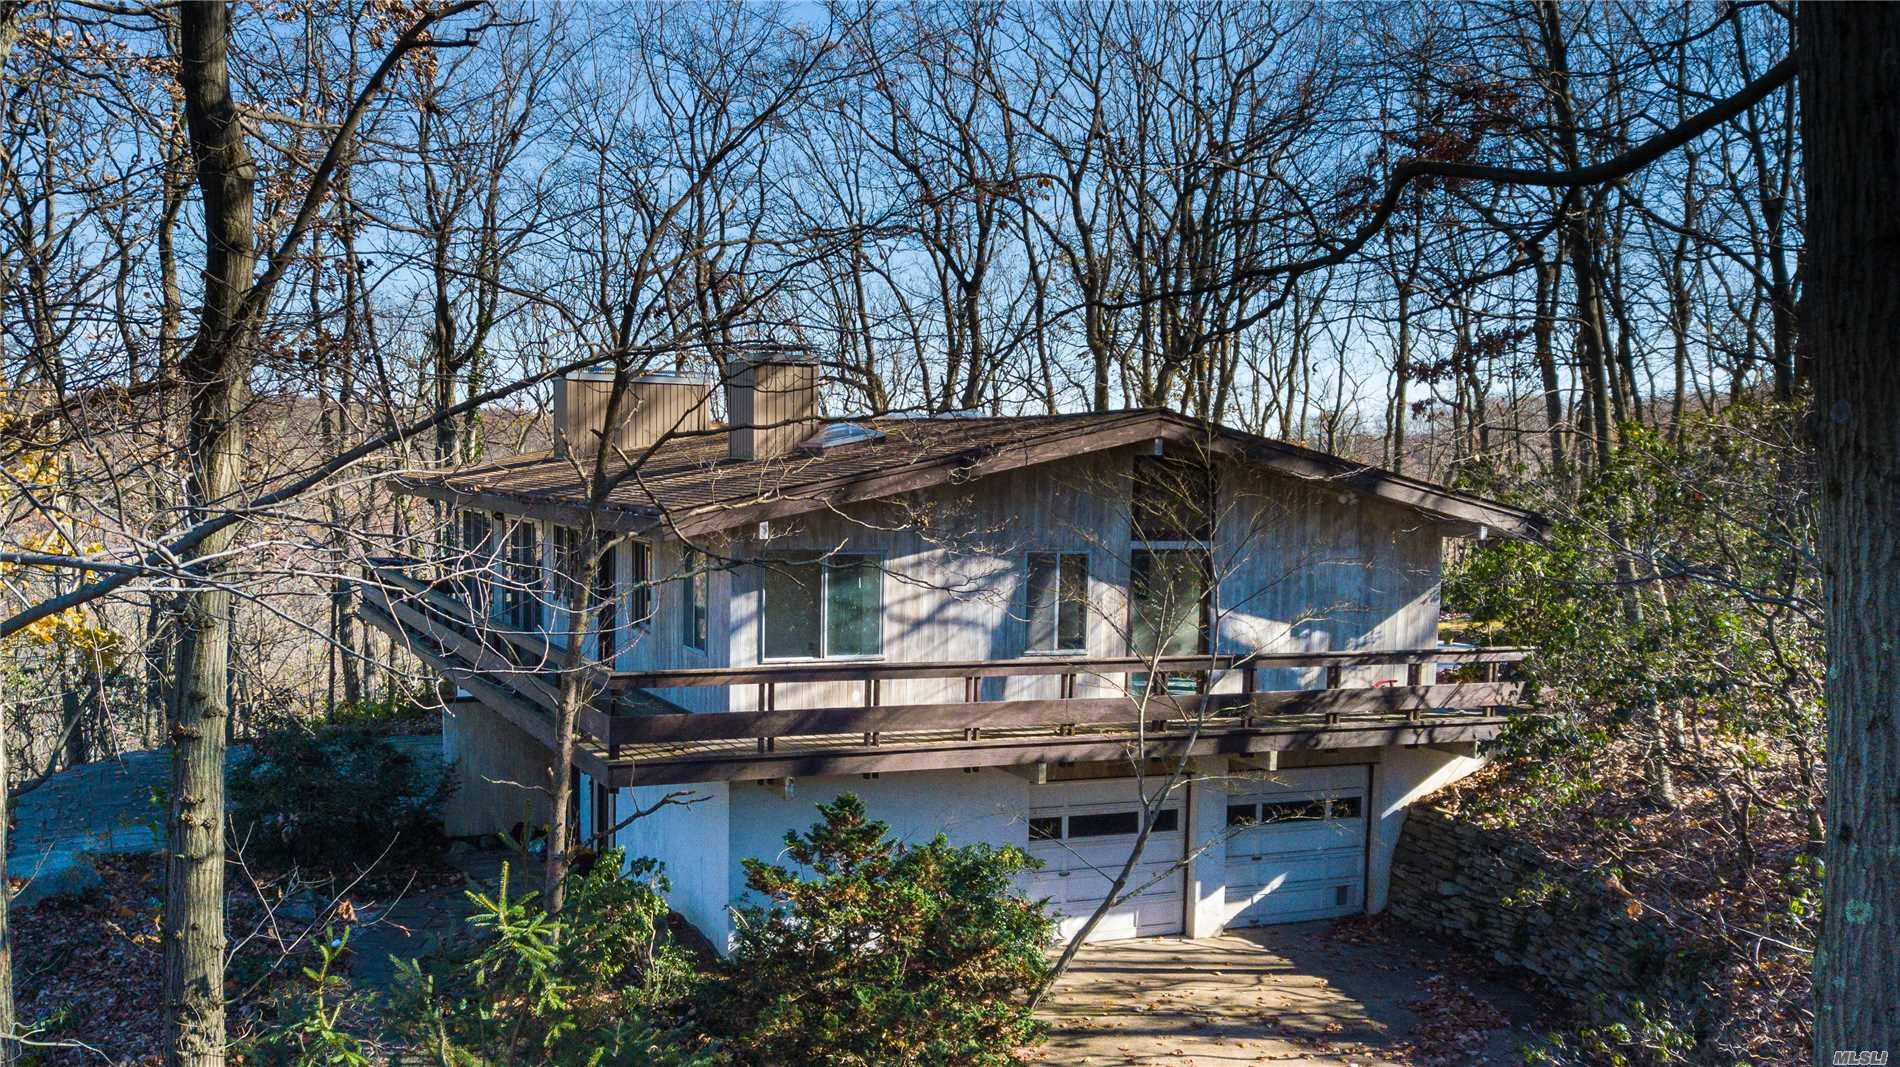 Rare Opportunity! 3+ Wooded Acres W/View Of Northport Harbor. Mid Century Post-And-Beam Inspired Home Designed By Noted Architect Theodore Bindrim (Garden City Hotel). Crafted W/Redwood & Floor-To-Ceiling Windows, This Serene Retreat Is The Ultimate Indoor-Outdoor Experience. Solidly Built W/Stunning Wood Beamed Cathedral Ceilings & Updated Kitchen. Recharge Your Soul In This Wooded Oasis W/Out Compromising On Boutique Shopping, Fine Dining, Outdoor Recreation, Railroad, Harborfields School.